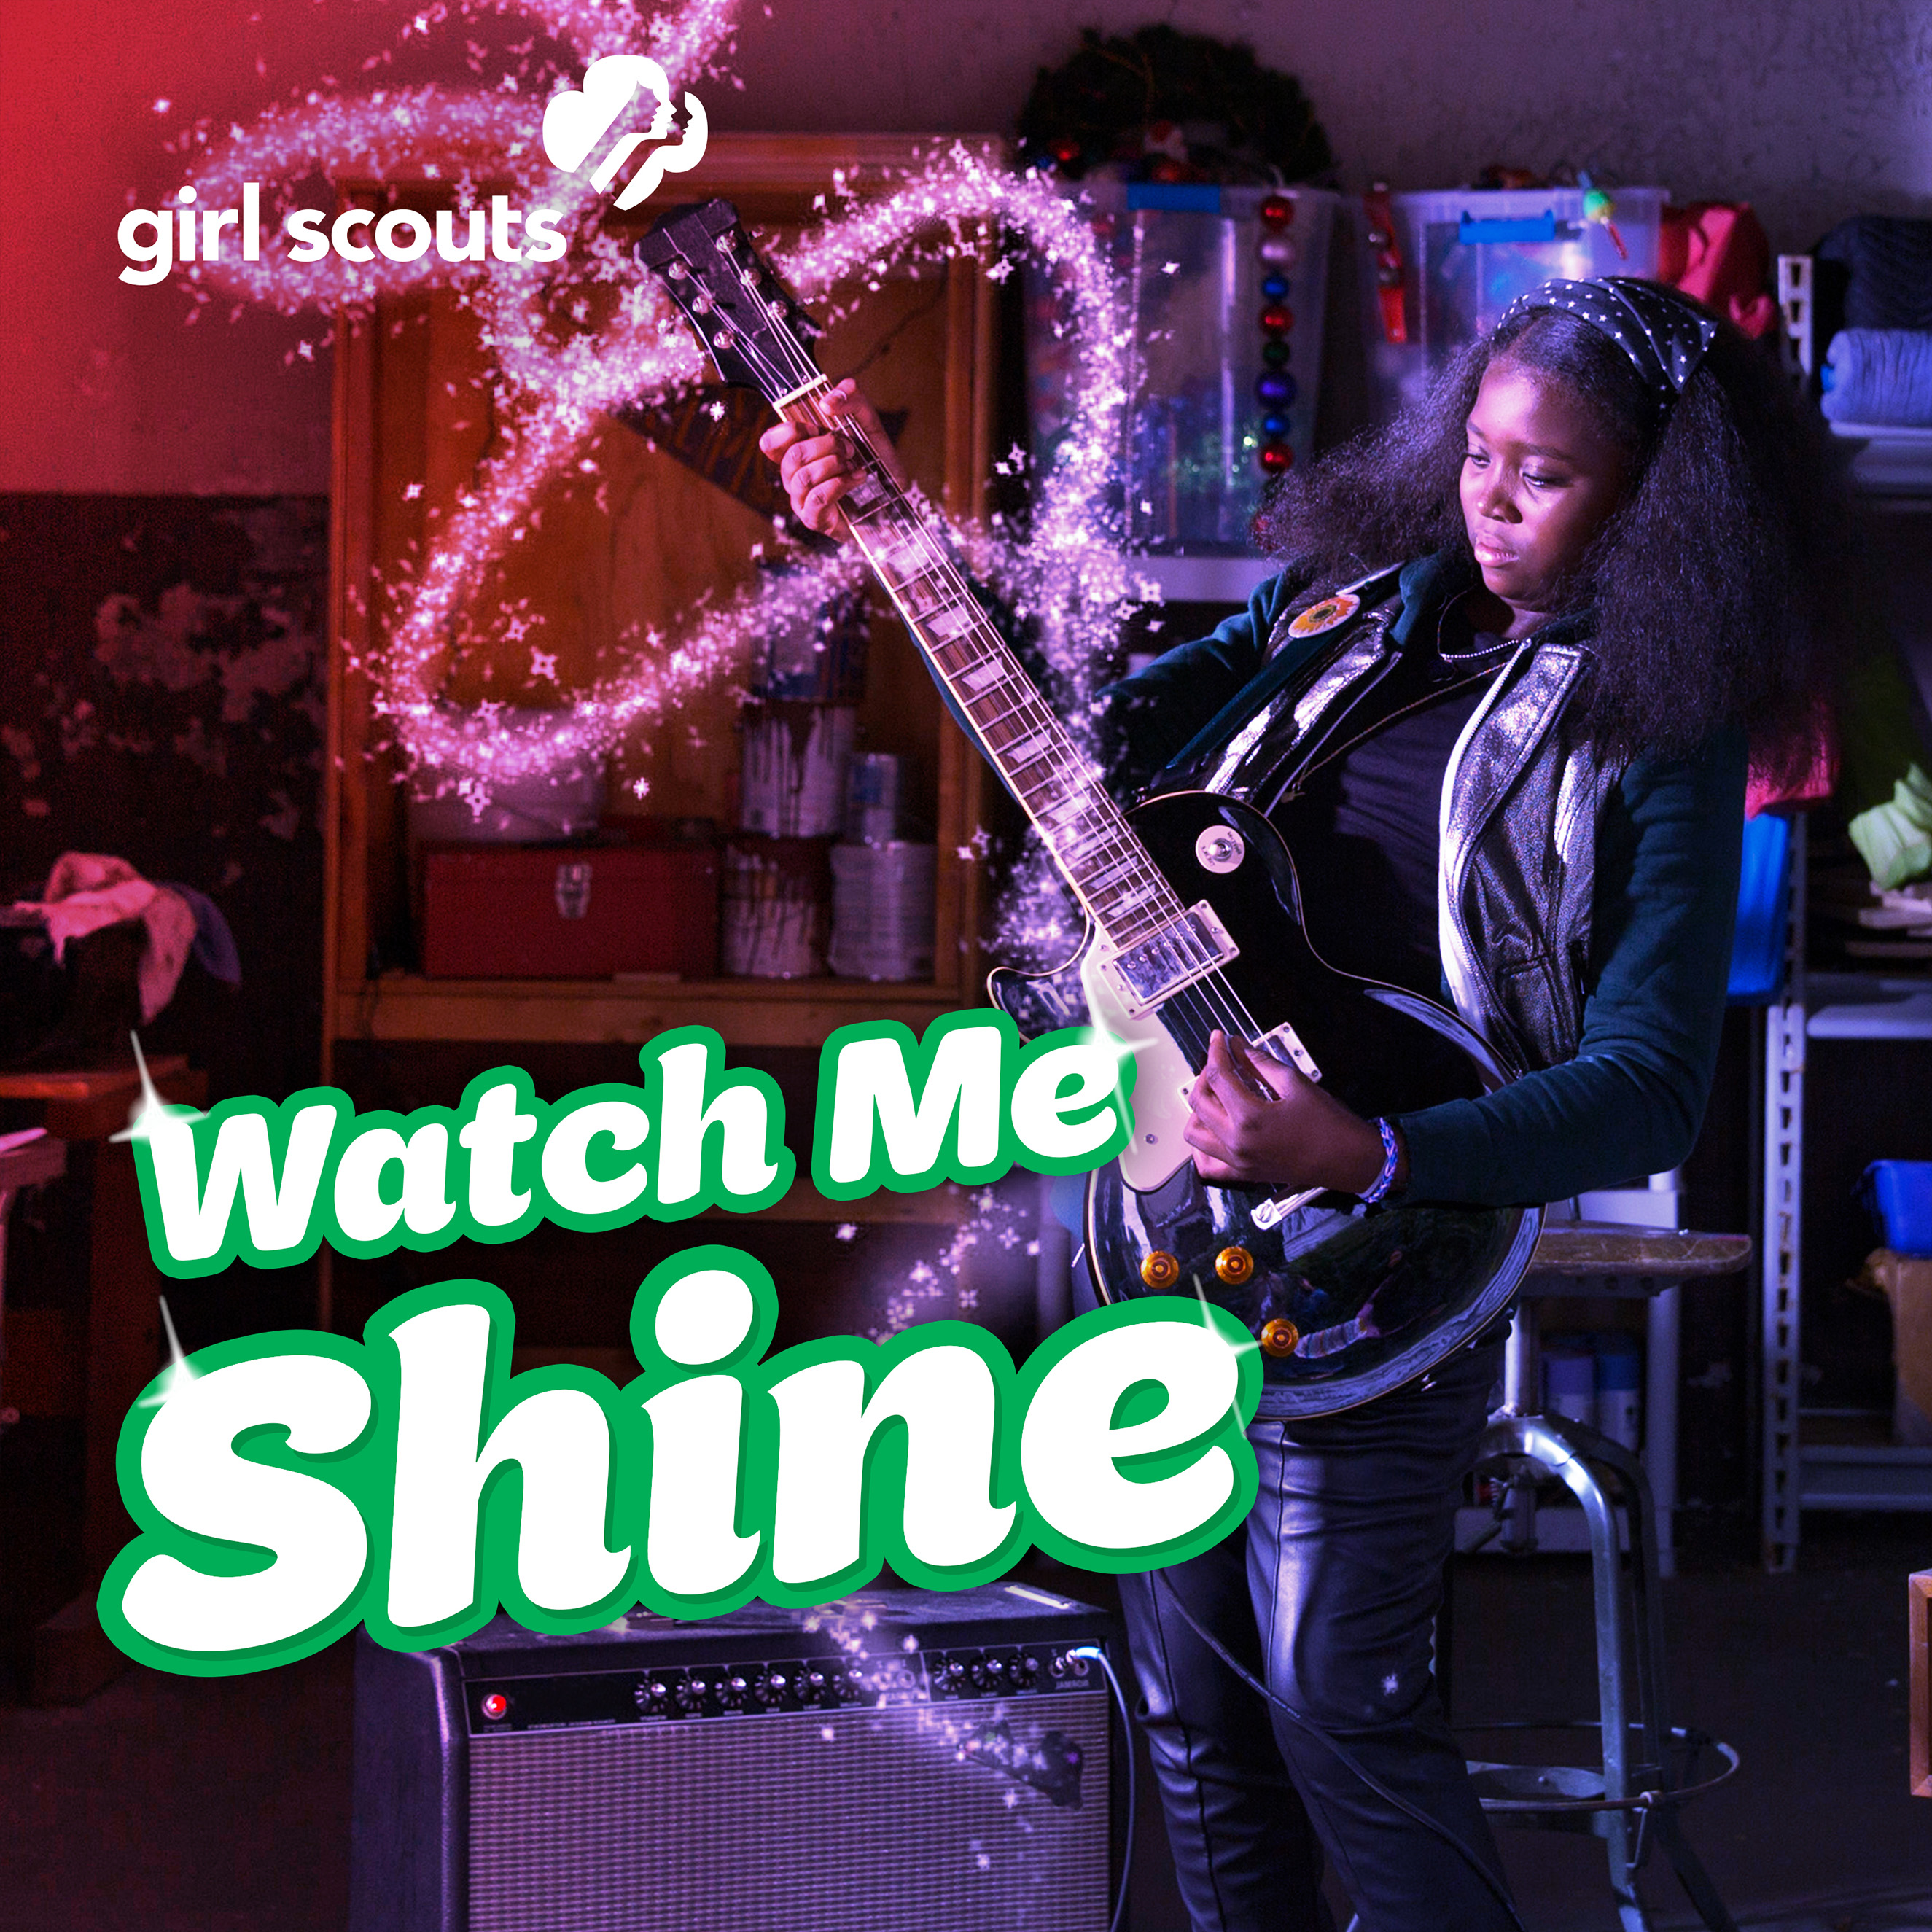 """The PSA is set to Girl Scouts' new powerful pop anthem, """"Watch Me Shine,"""" co-written by songwriters Liz Rose and Emily Shackelton."""